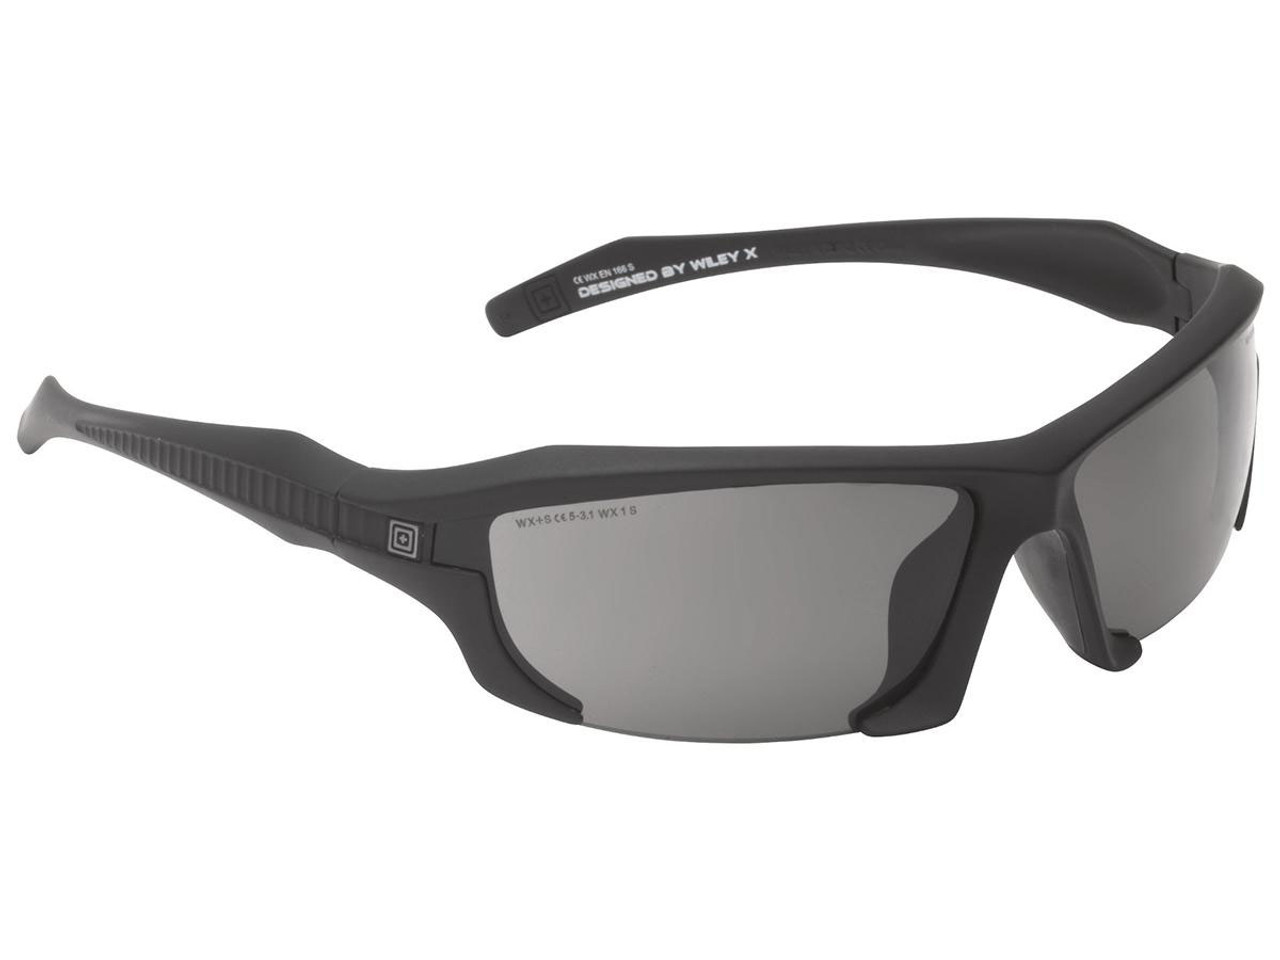 fec6e07b9a0 5.11 Tactical Burner Shooting Glasses with 3 Lens by Wiley-X - Hero ...